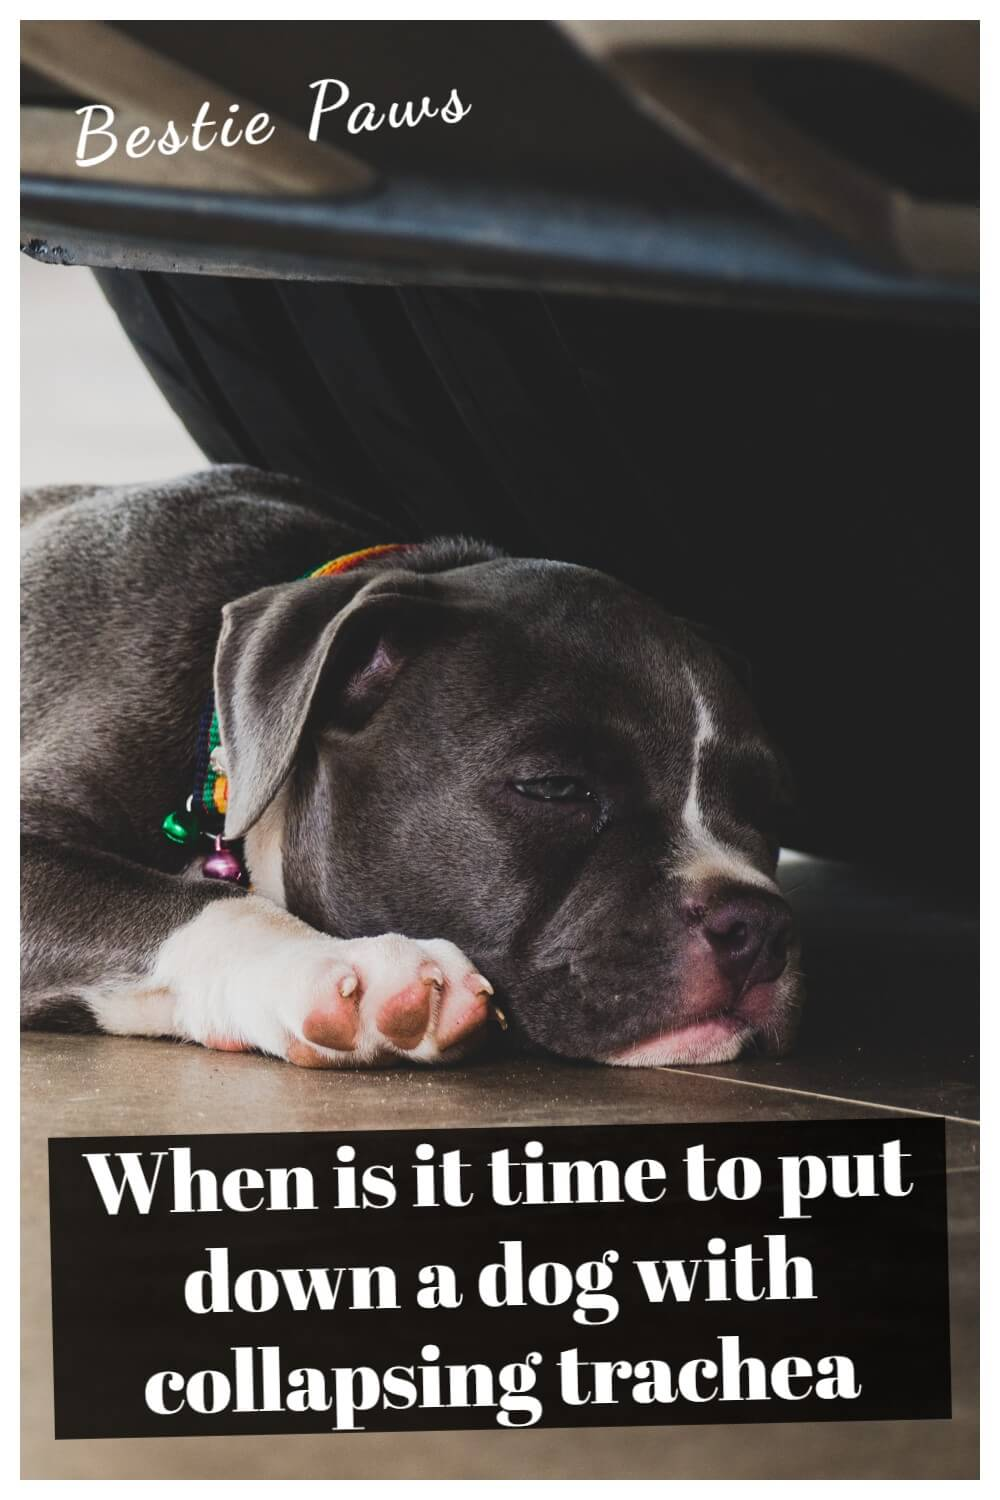 When is it time to put down a dog with collapsing trachea